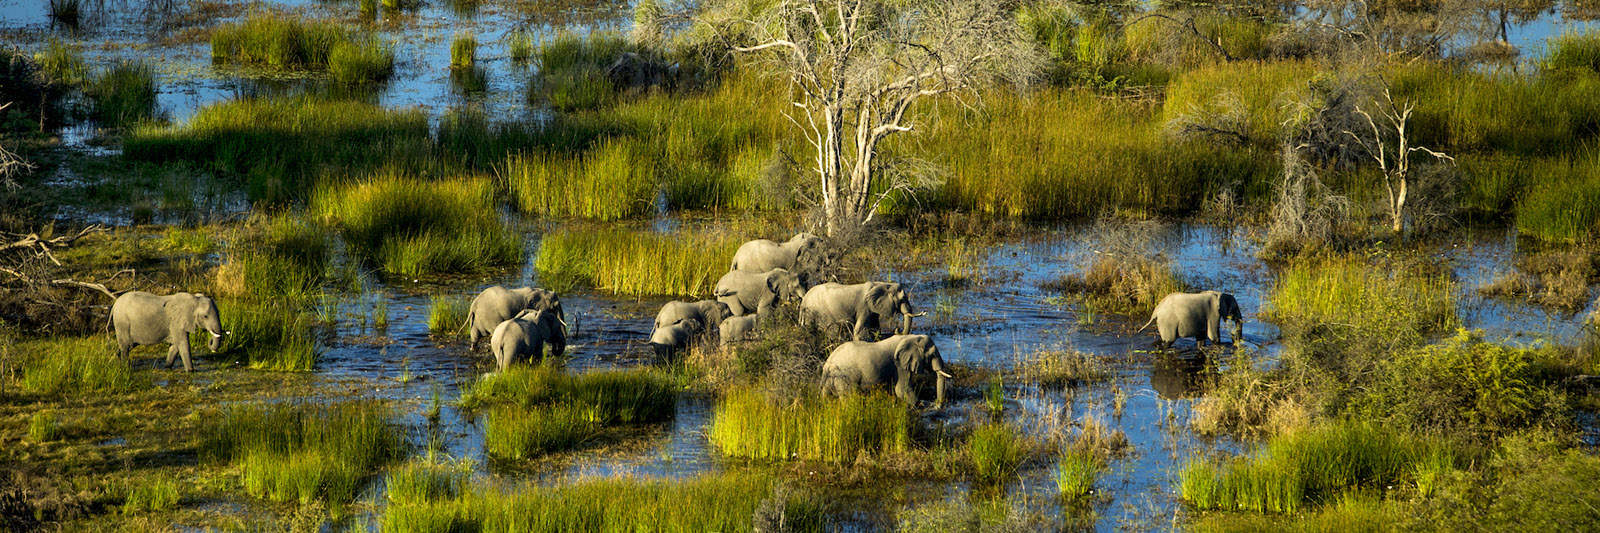 10 Quick Facts About Botswana (that will make you want to go there)